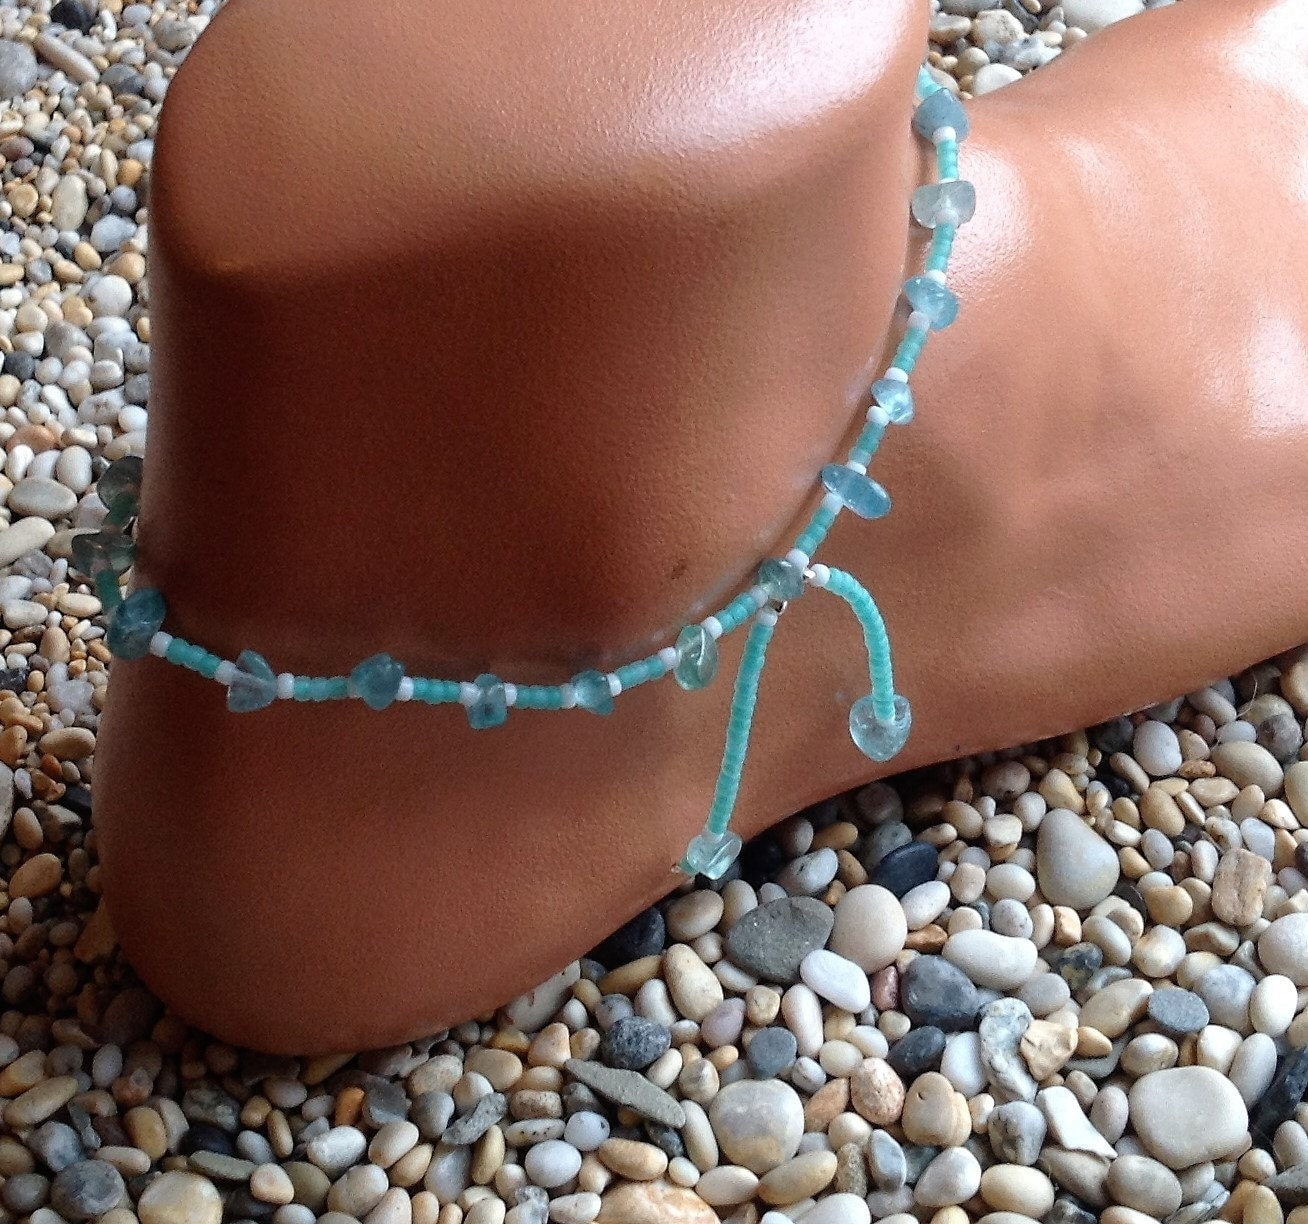 Apatite crystal with bright turquoise blue and white glass beaded anklet with beaded tassels